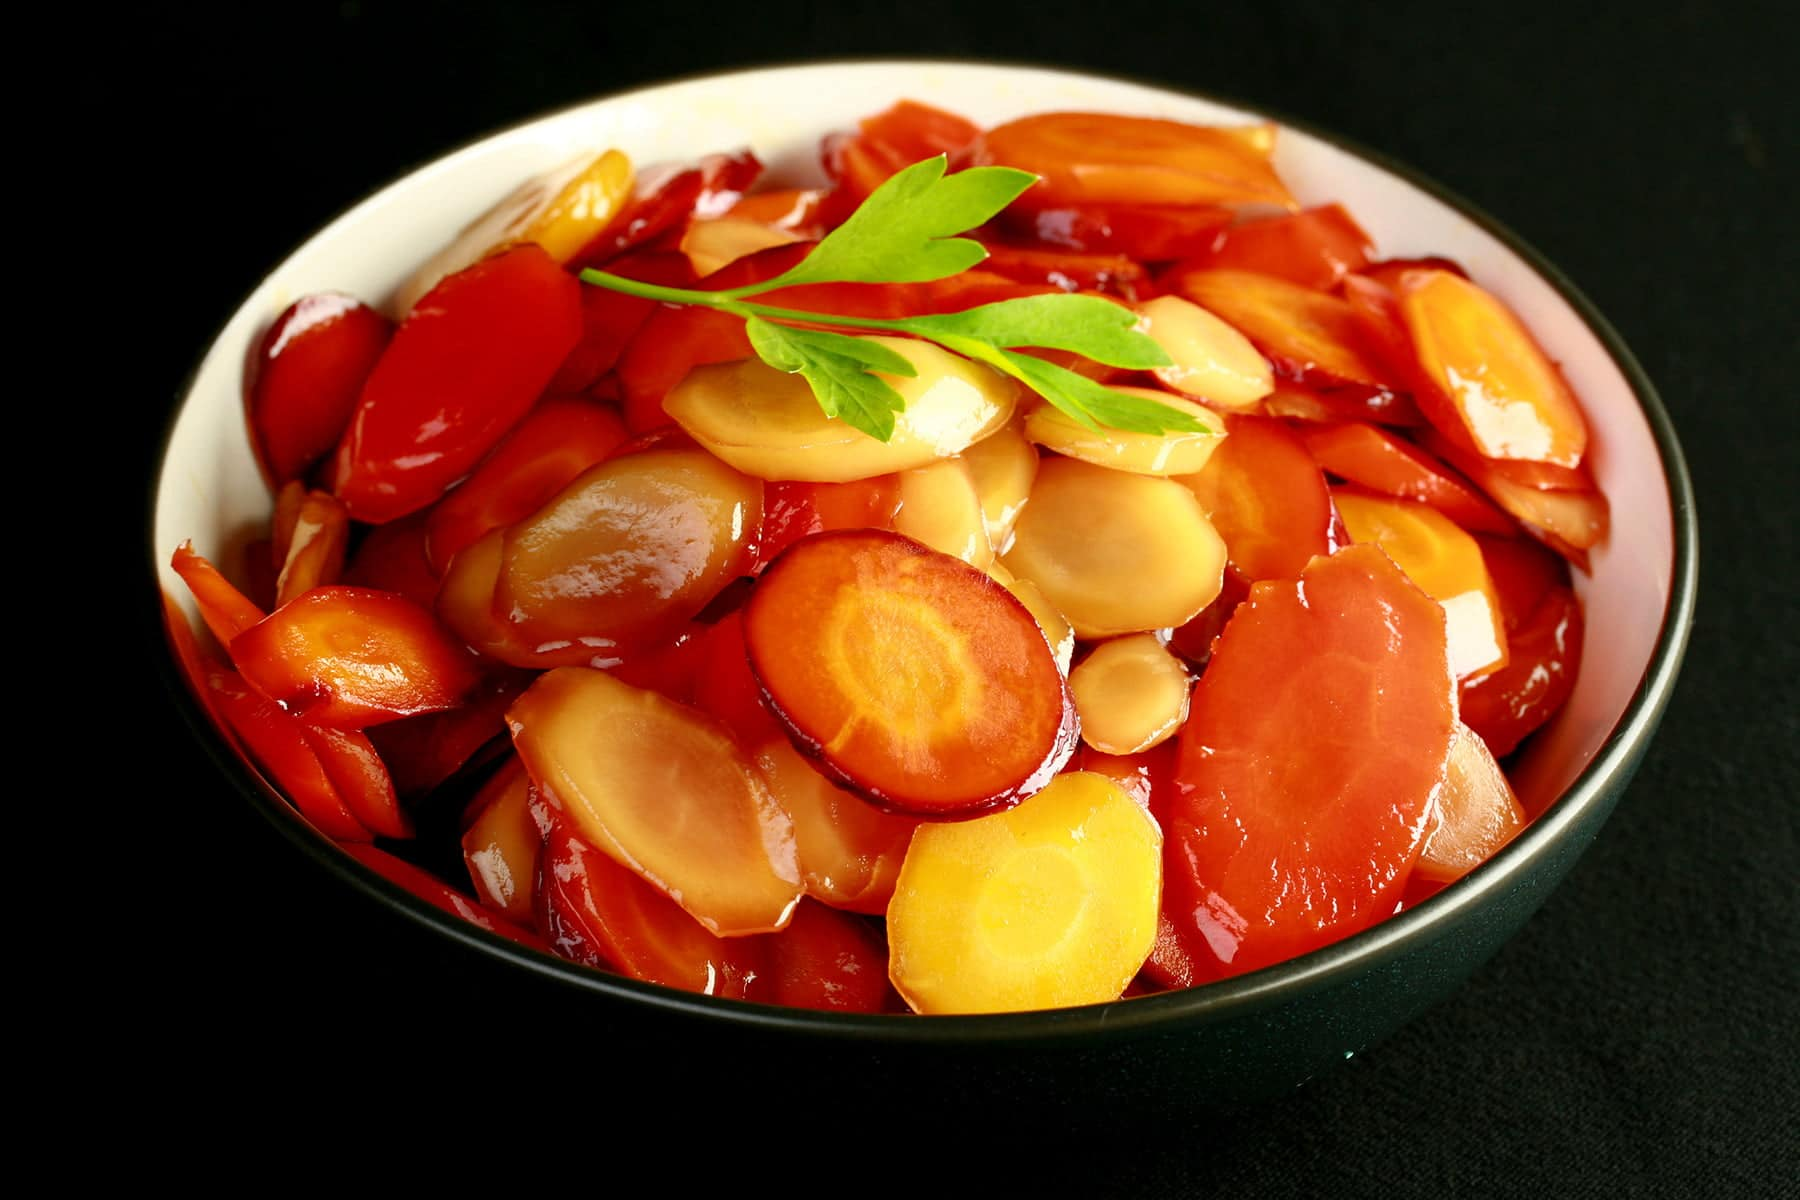 A bowl of brightly coloured carrot slices, in a shiny glaze. There is a small piece of flat leaf parsley on top, as garnish.